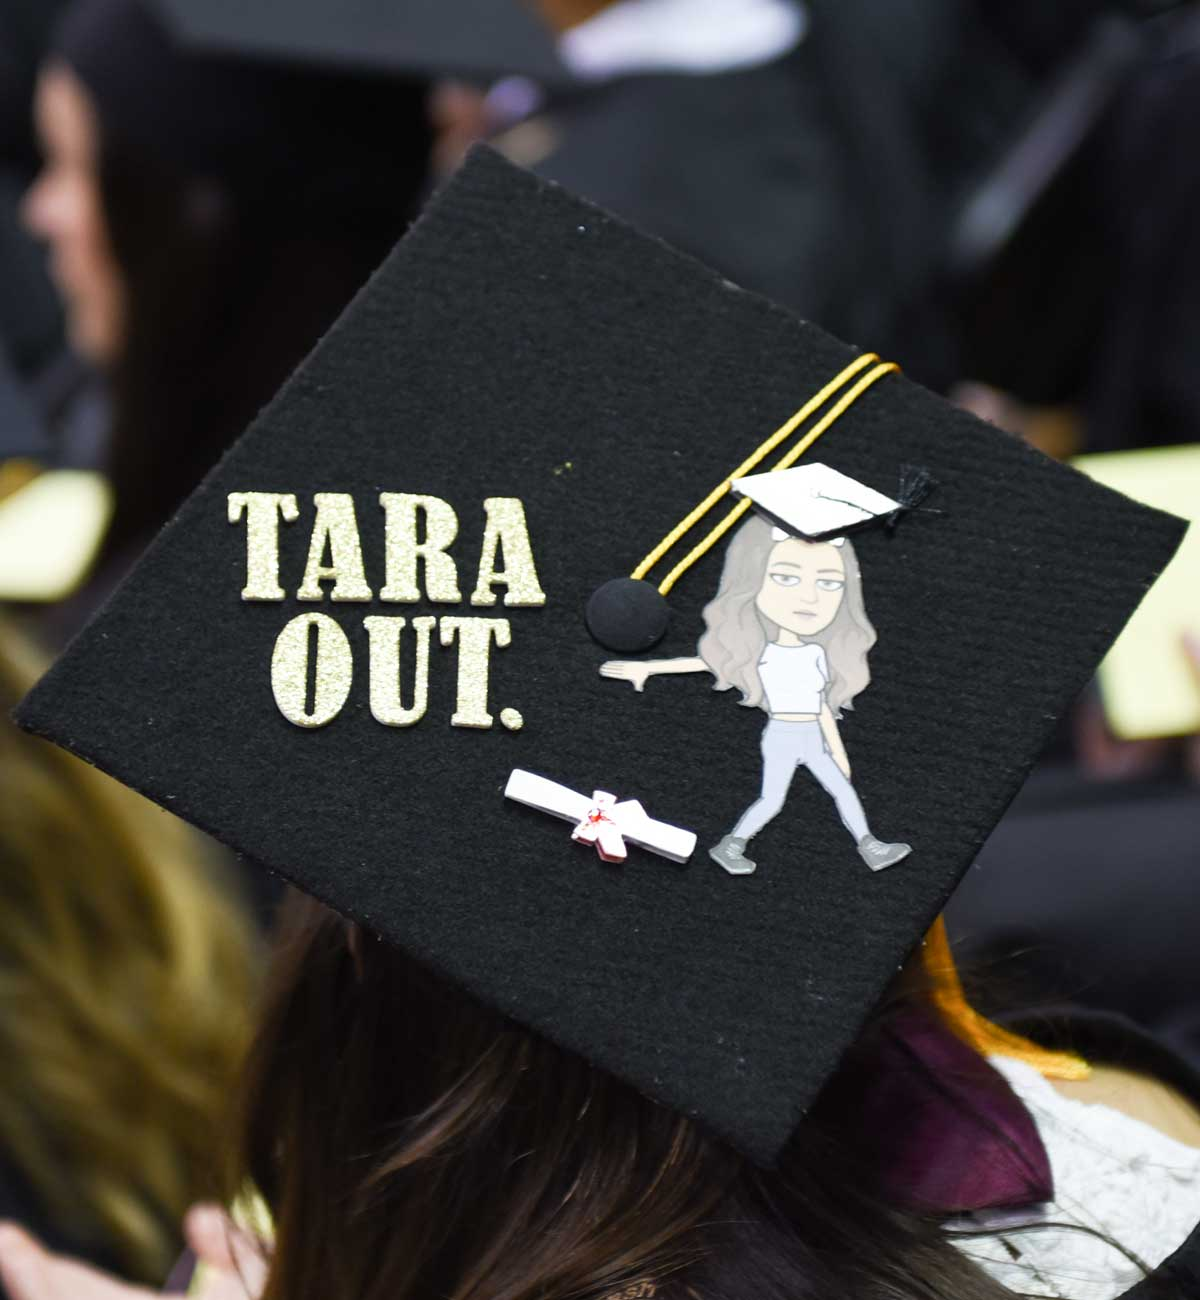 Grad cap decorated with text: Tara Out and image of person dropping diploma